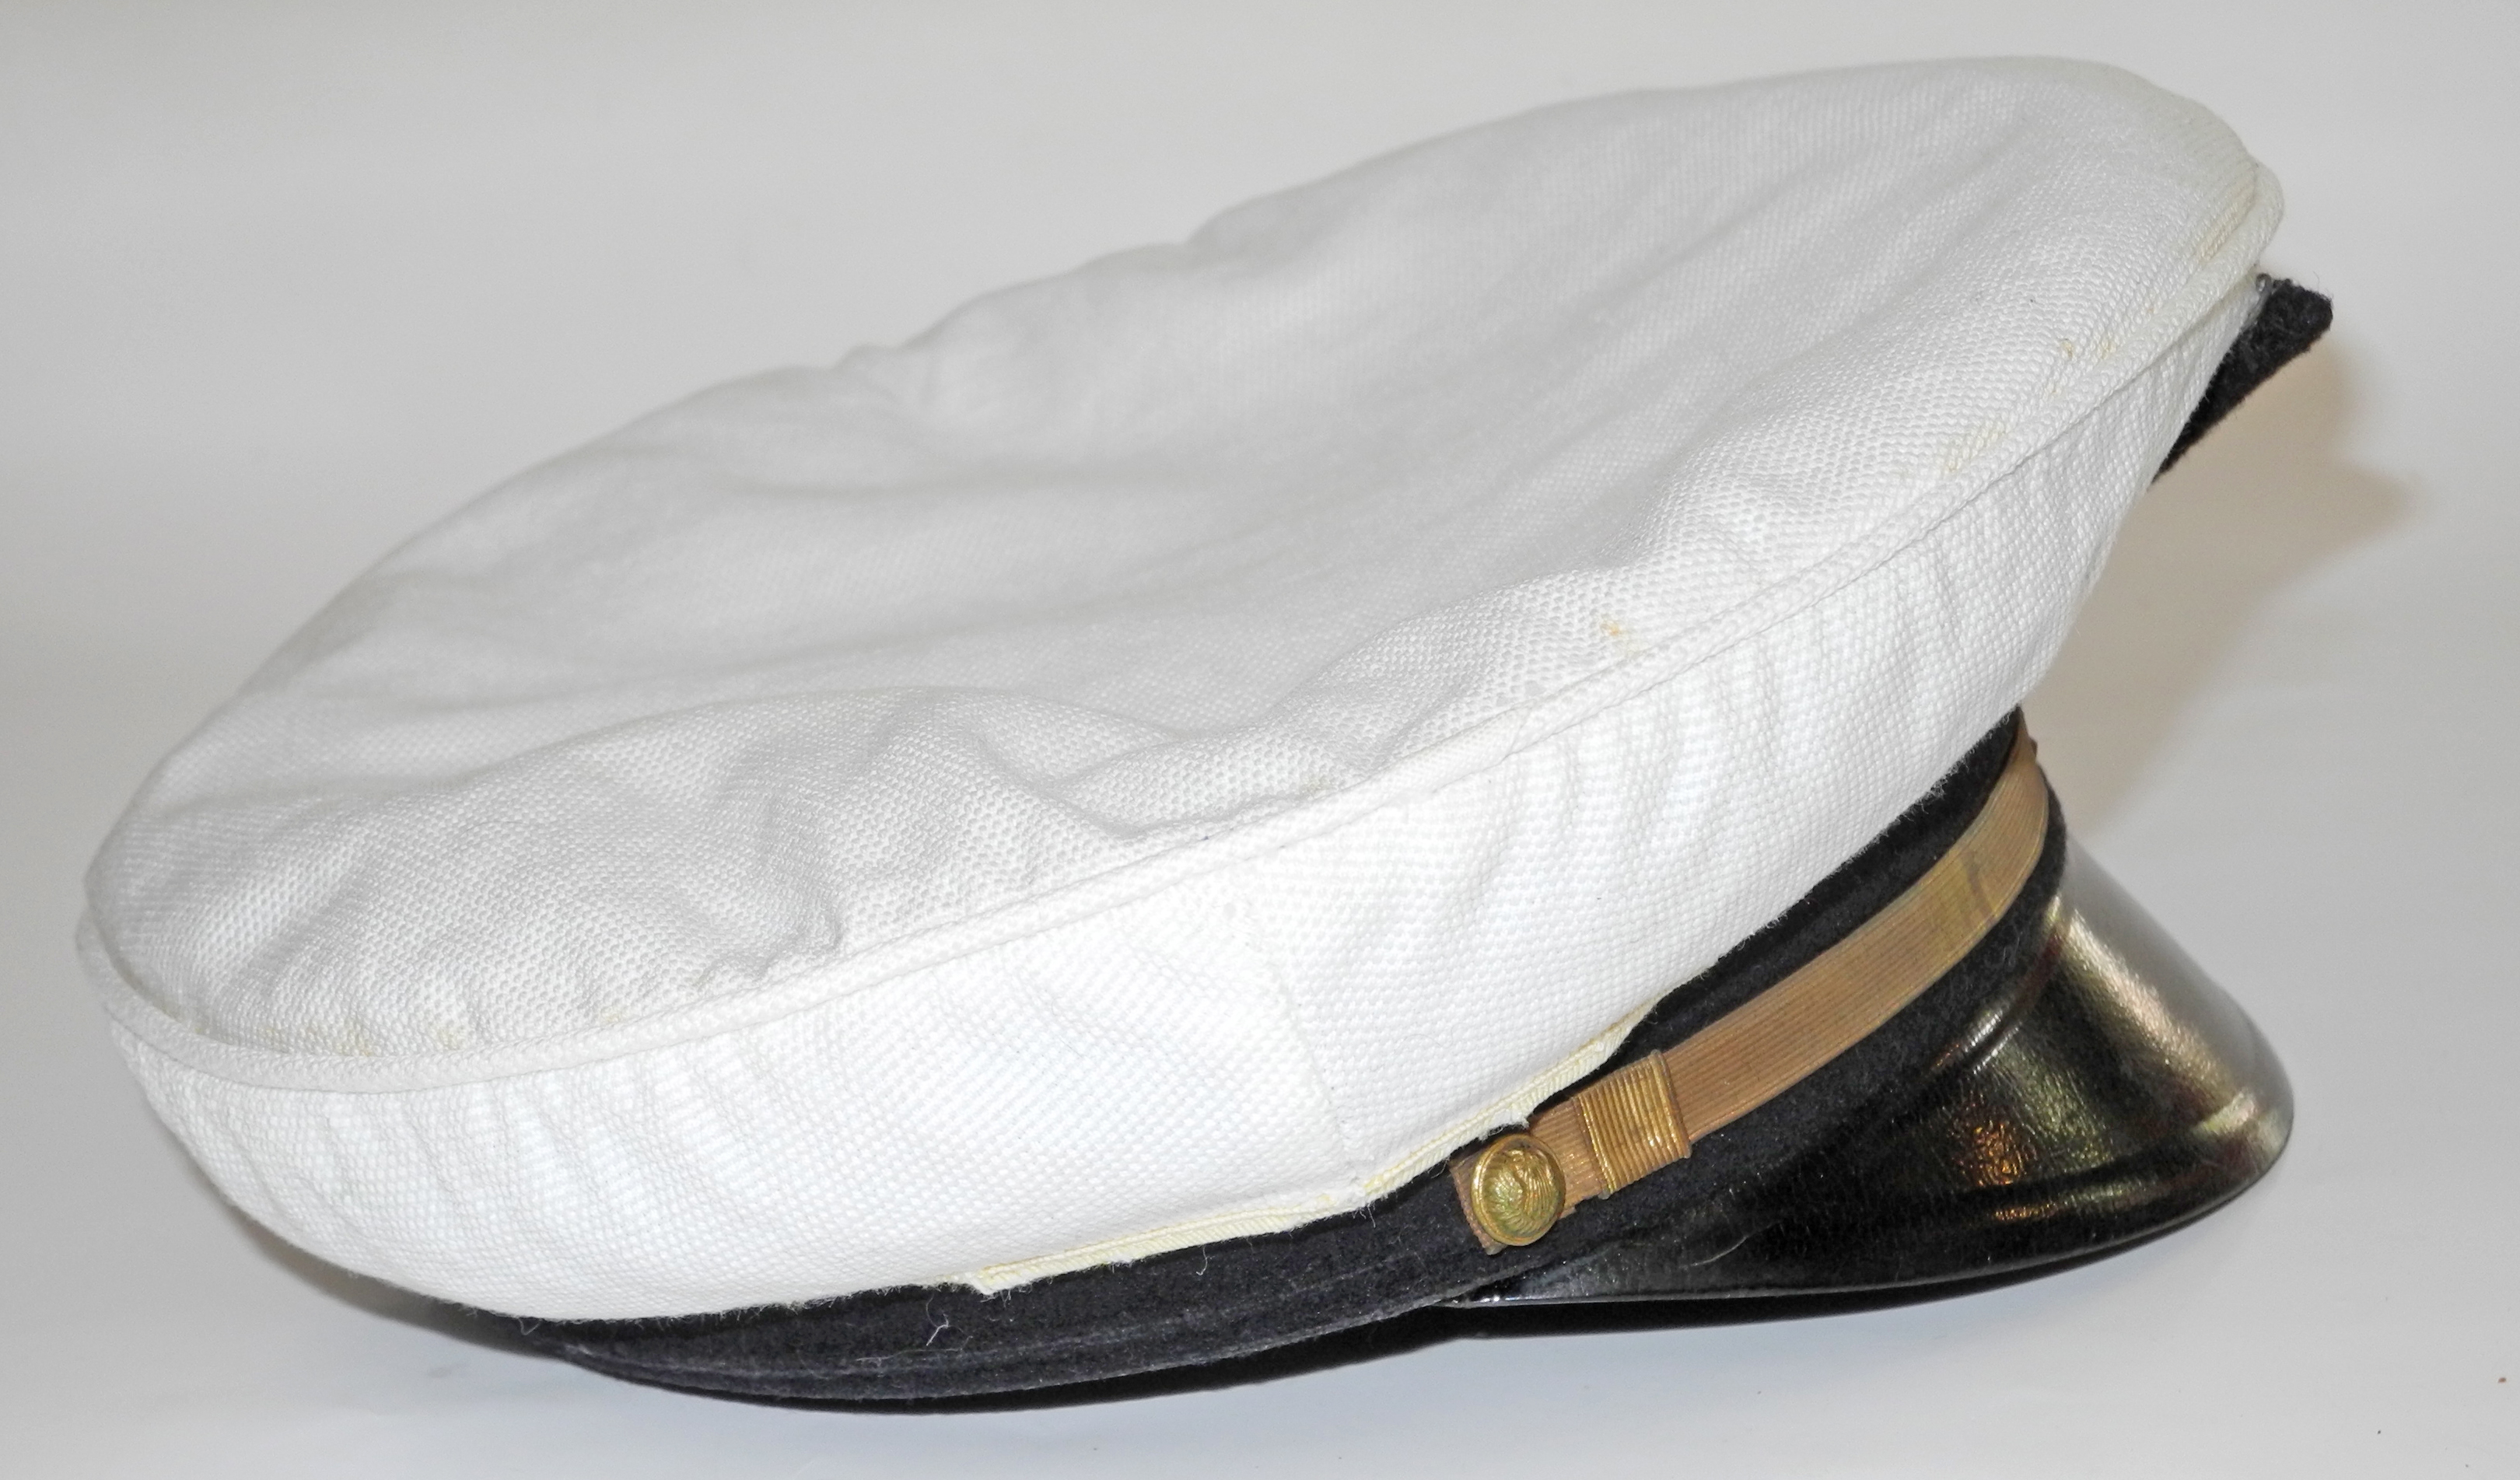 WWII French Air Force officer's cap with white cover